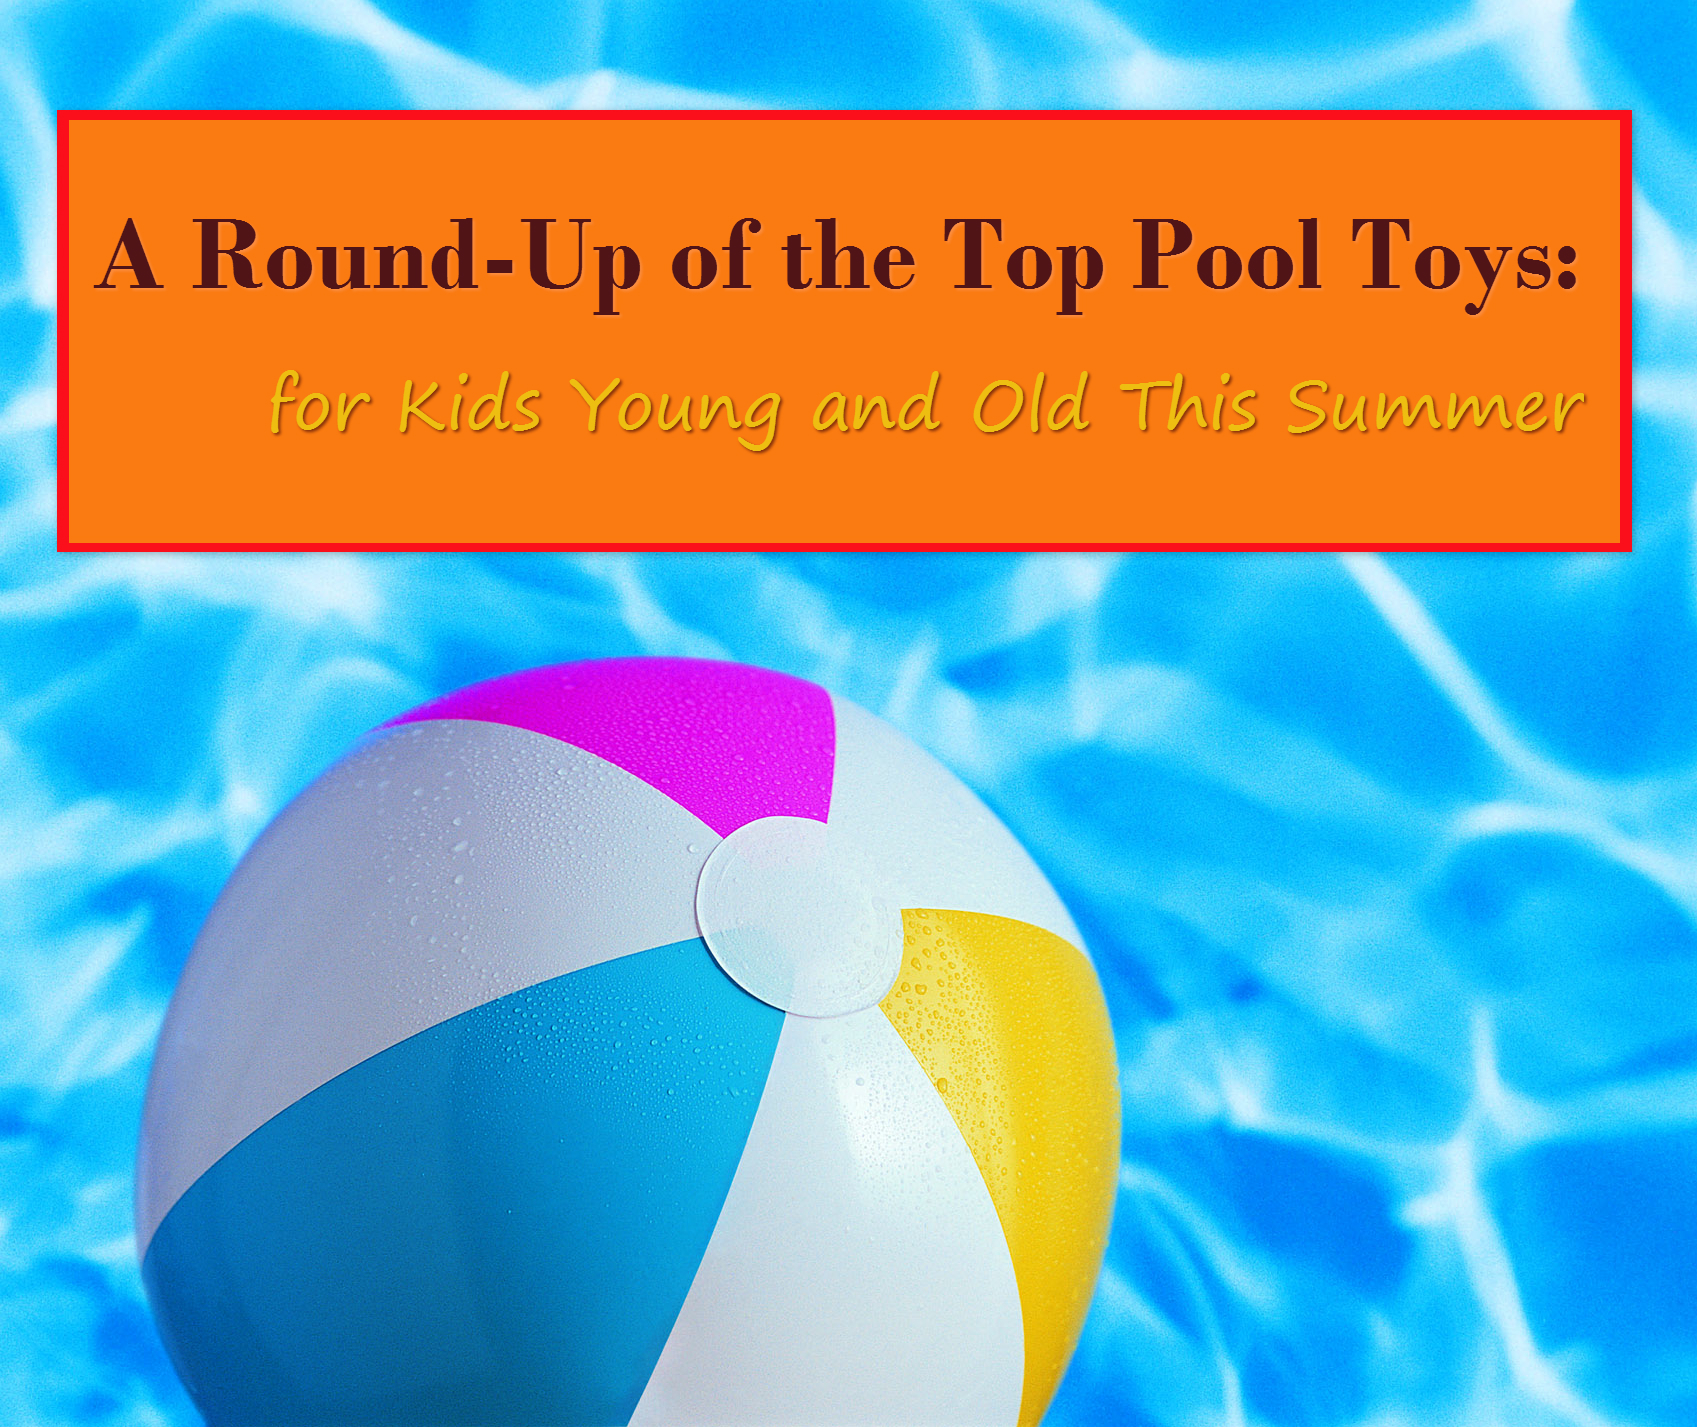 A Round Up of the Top Pool Toys for Kids Young and Old This Summer